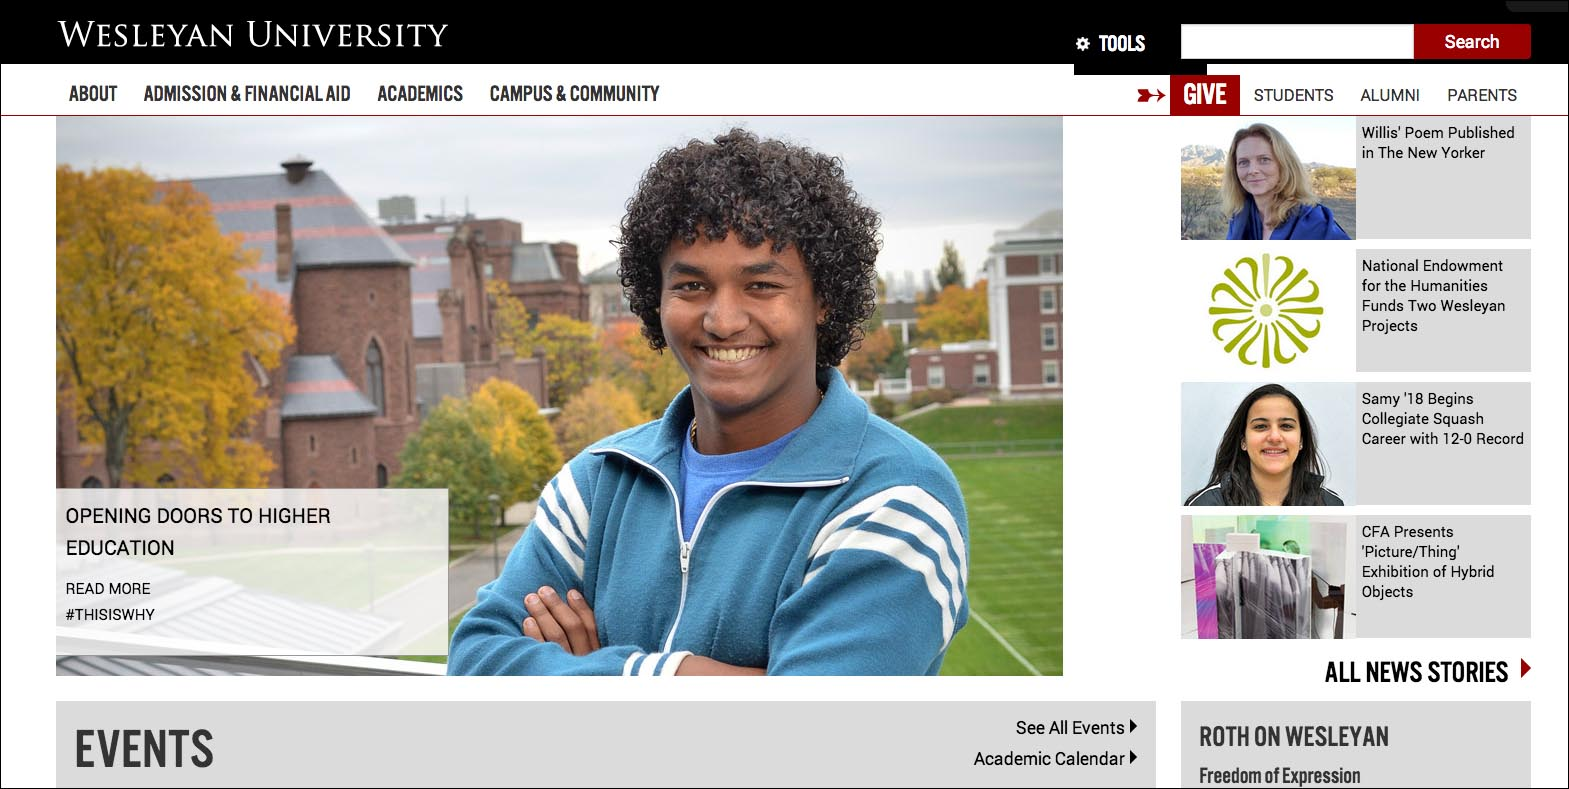 The new Wesleyan homepage has been designed responsively, meaning that it adapts depending upon whether users are viewing it on desktops, tablets, smart phones or other mobile devices.